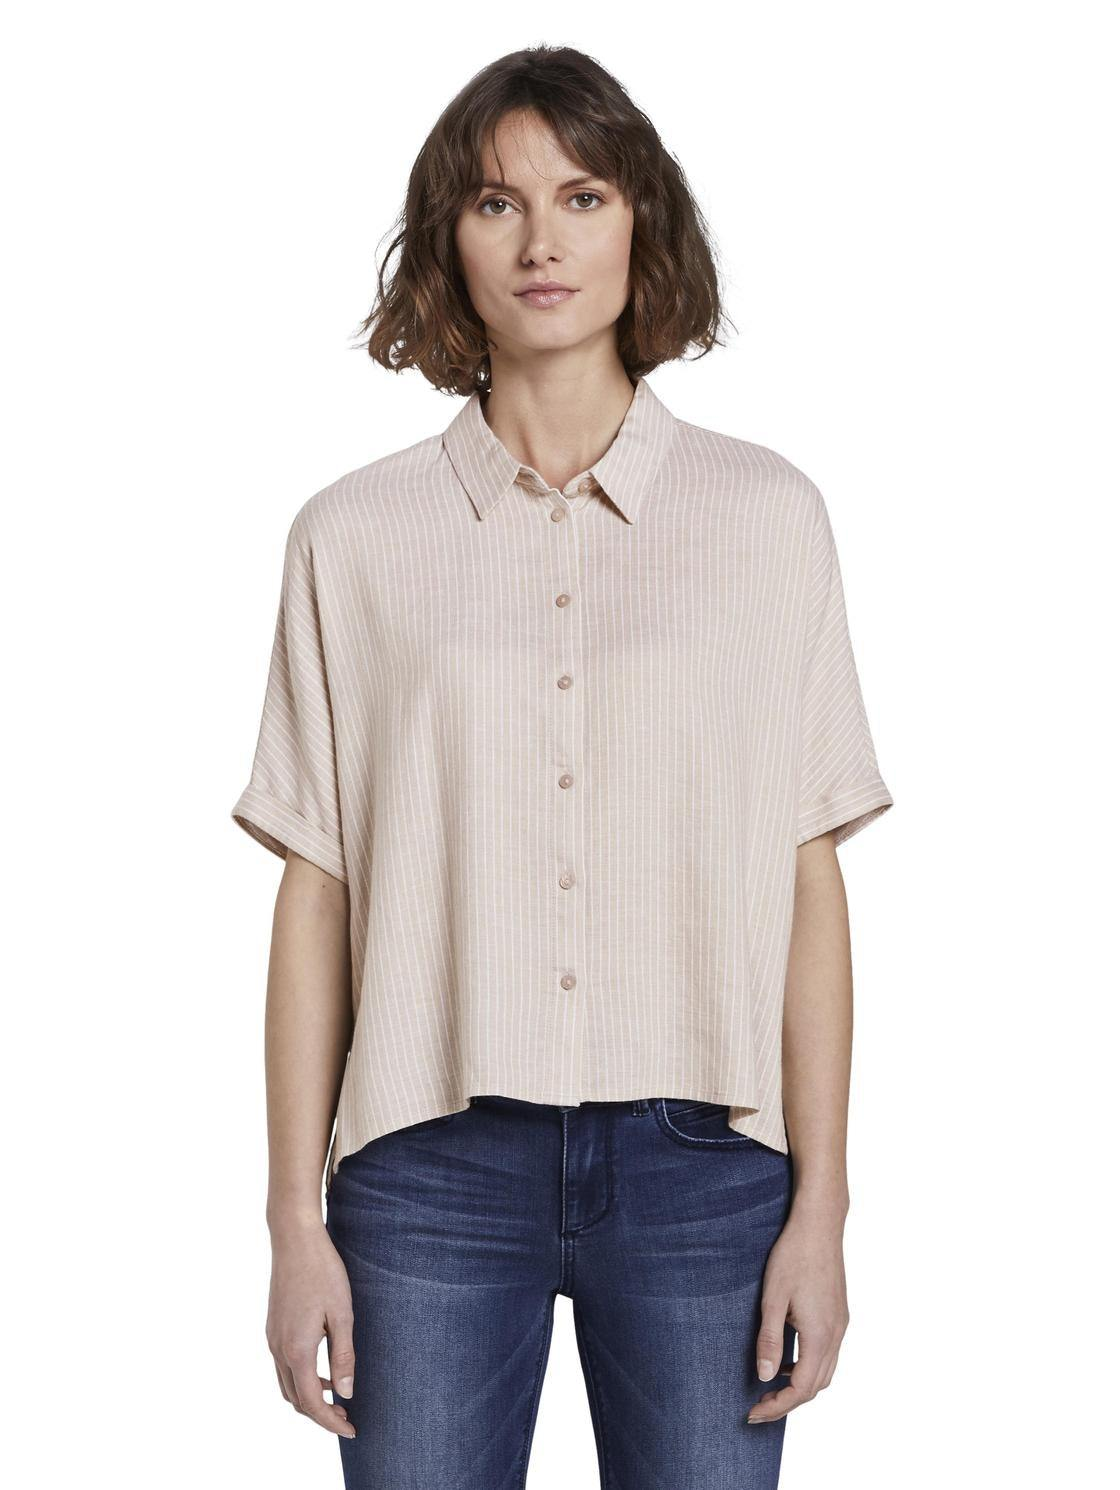 Tom Tailor women blouse 1017949